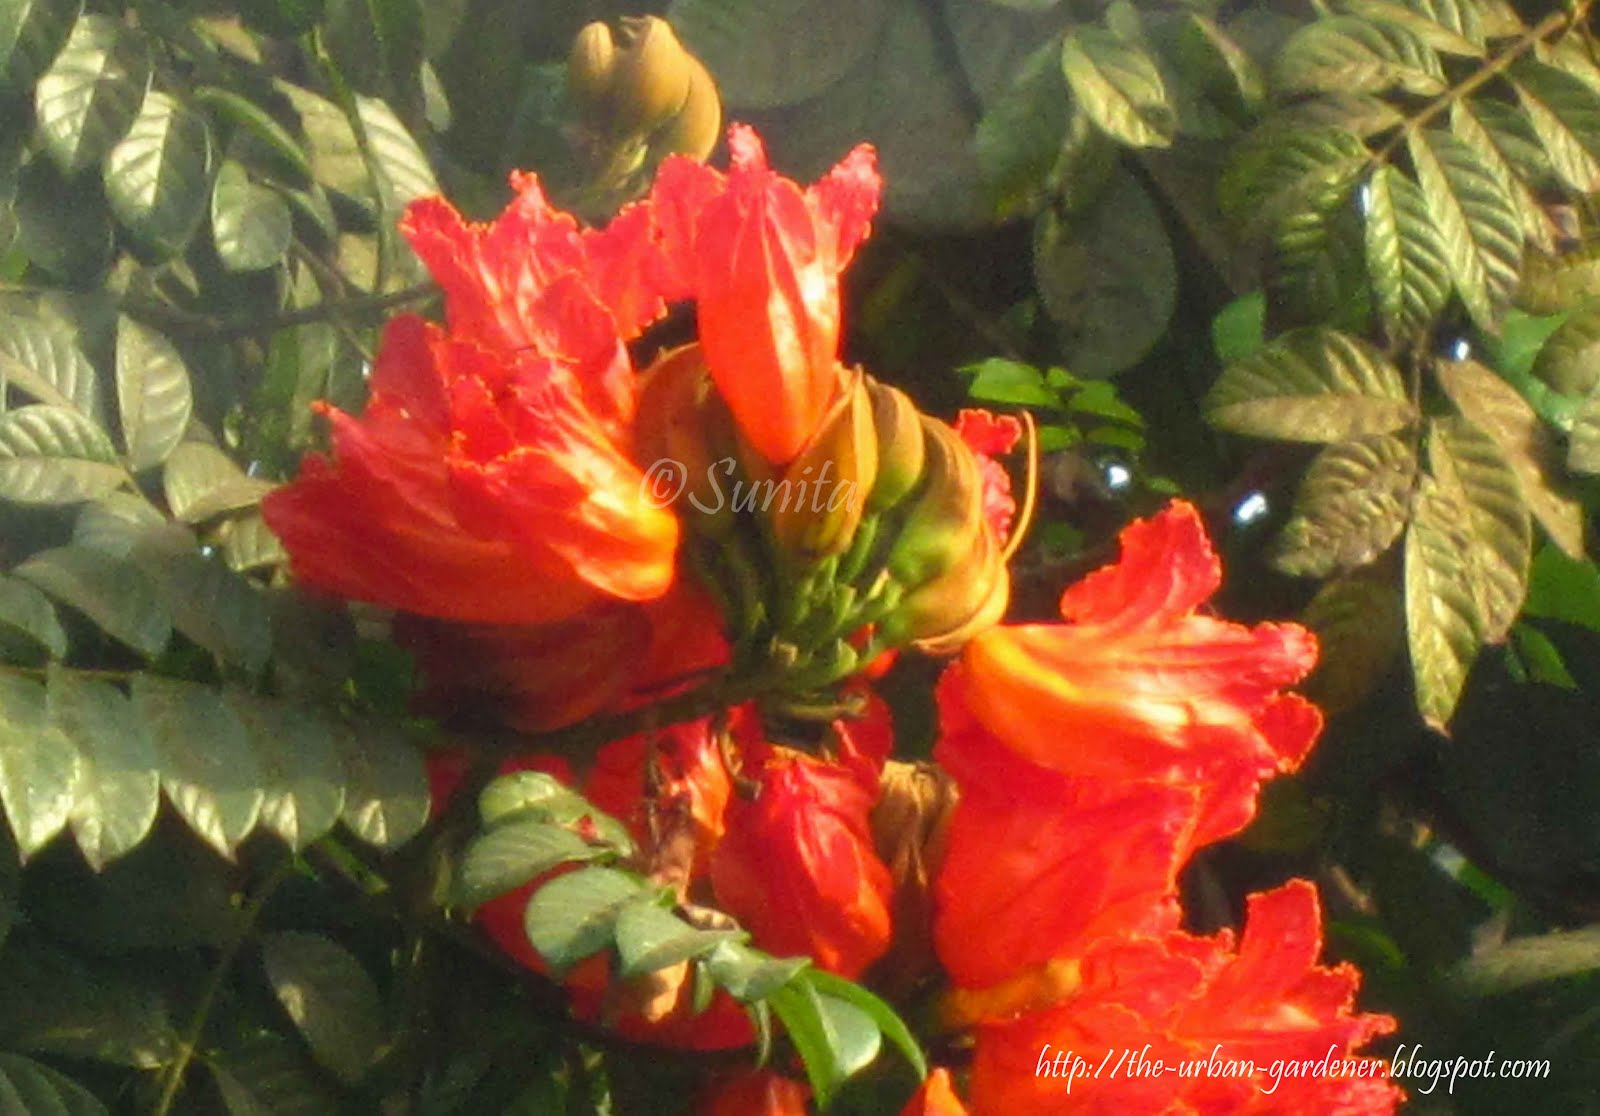 Names of flowers in hindi flowers names in sanskrit ideas cool flowers of india with hindi names the most beautiful flower izmirmasajfo Images